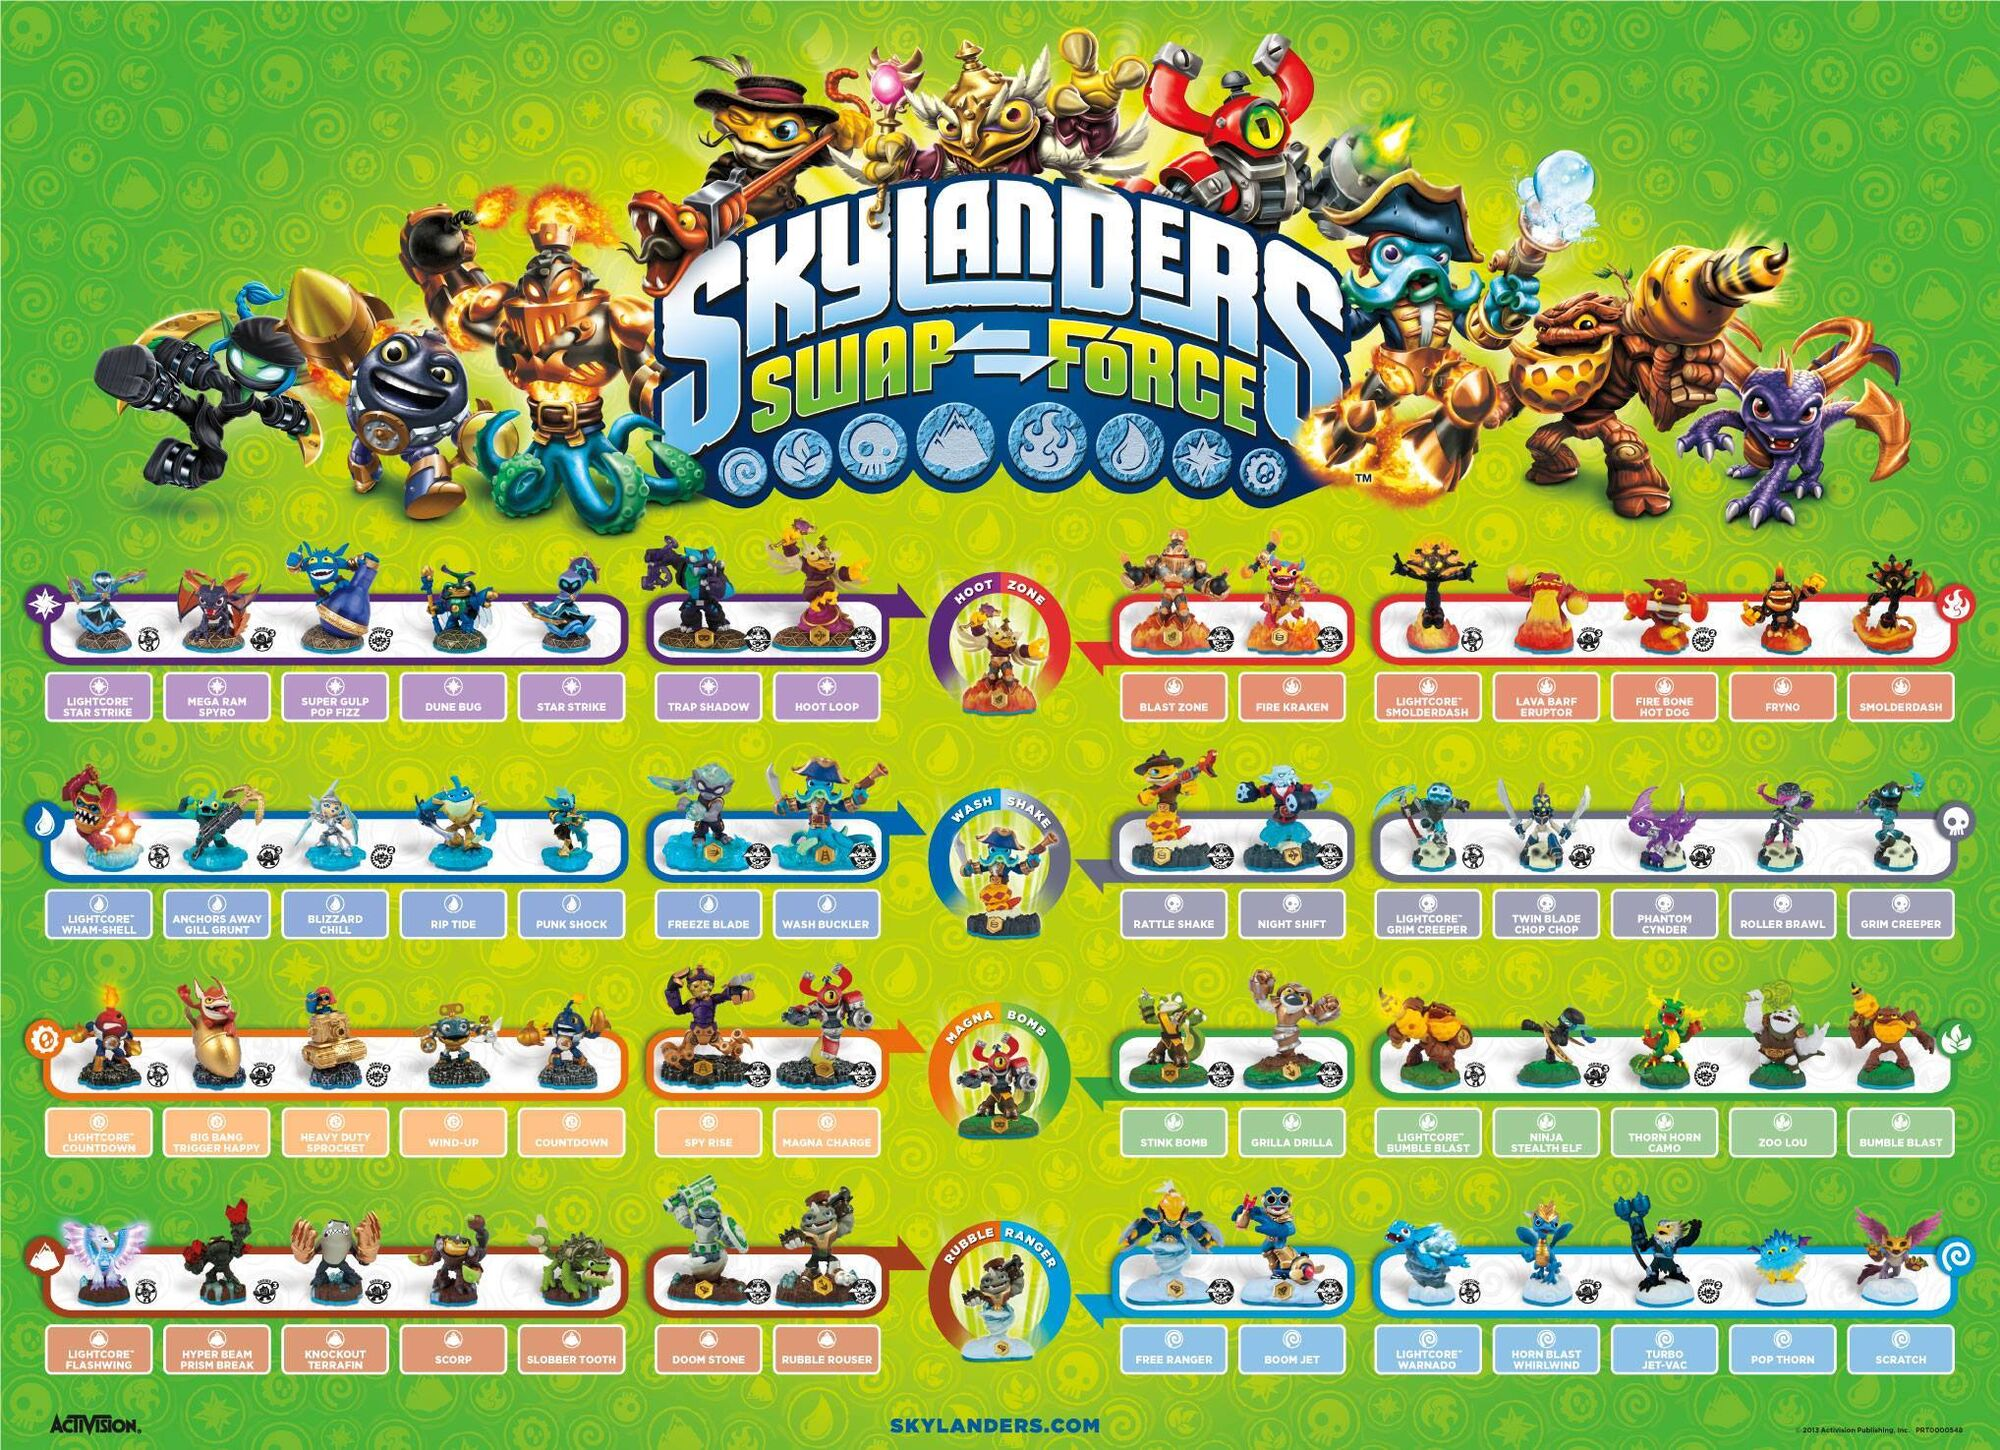 Image swap force skylanders wiki fandom powered by wikia - Tous les skylanders ...